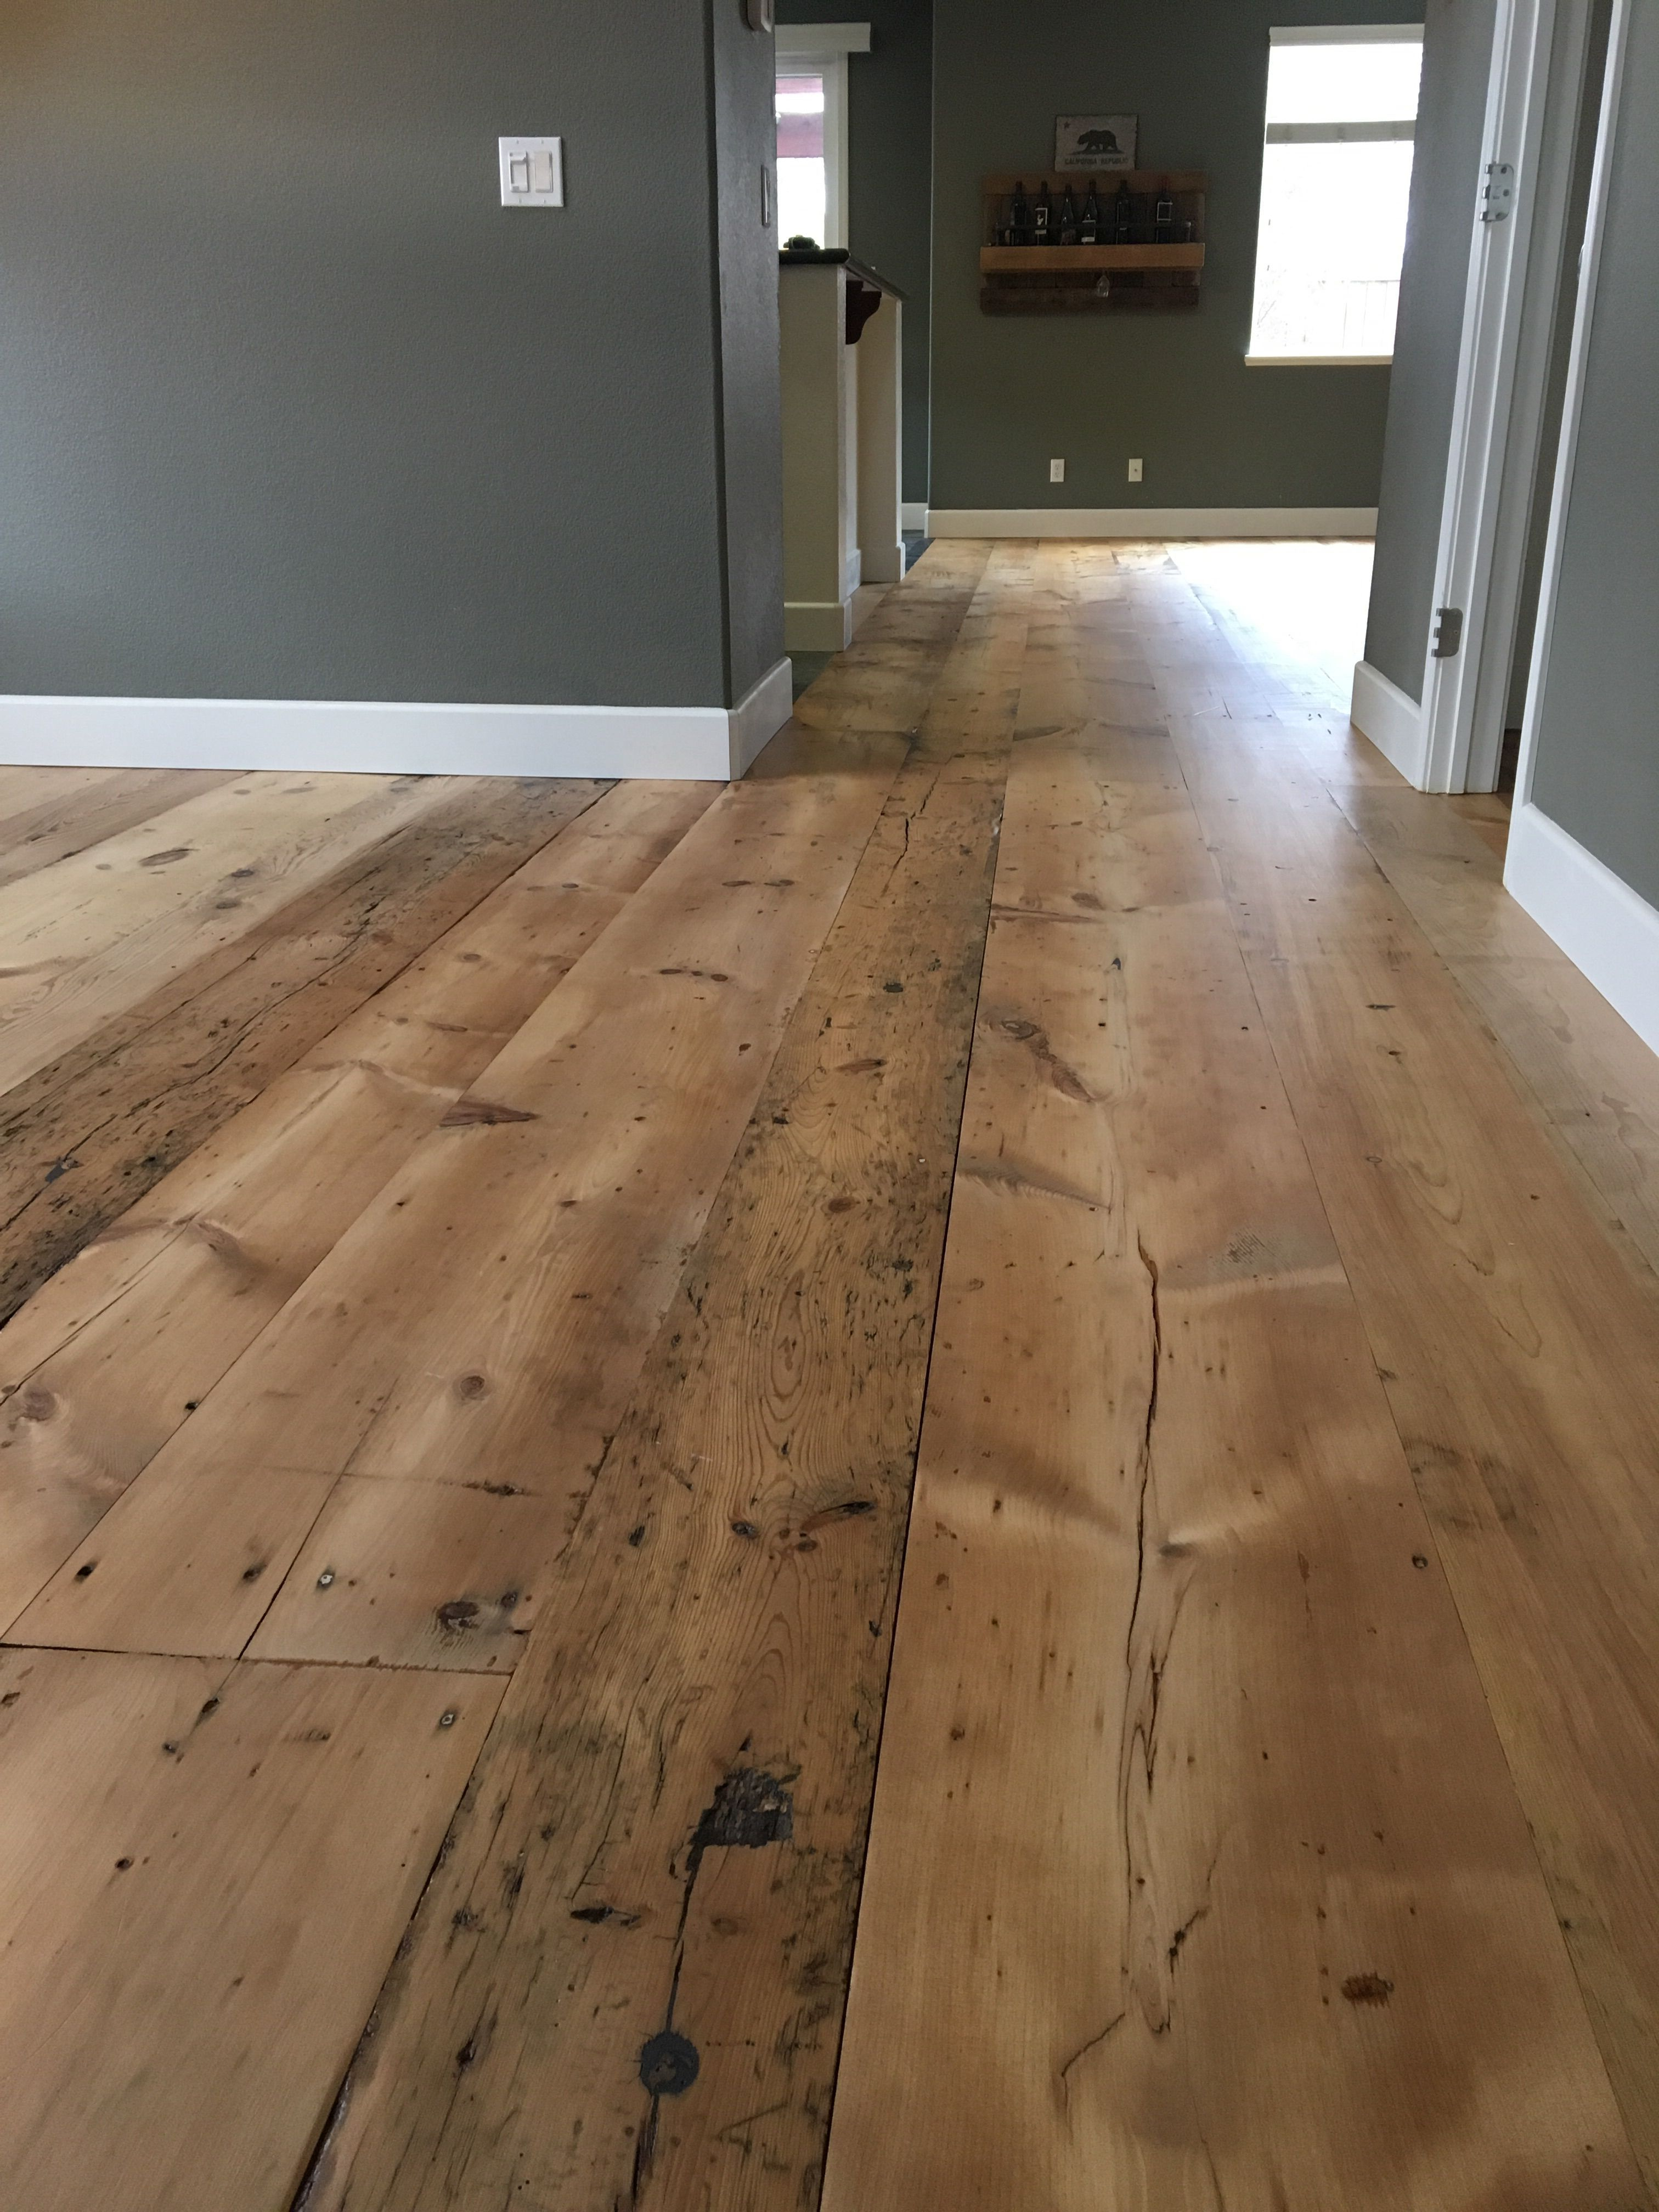 Wide Plank Mixed Widths Mostly Pine Some Maple And Hemlock In 2020 Home Remodeling House Small House Interior Design